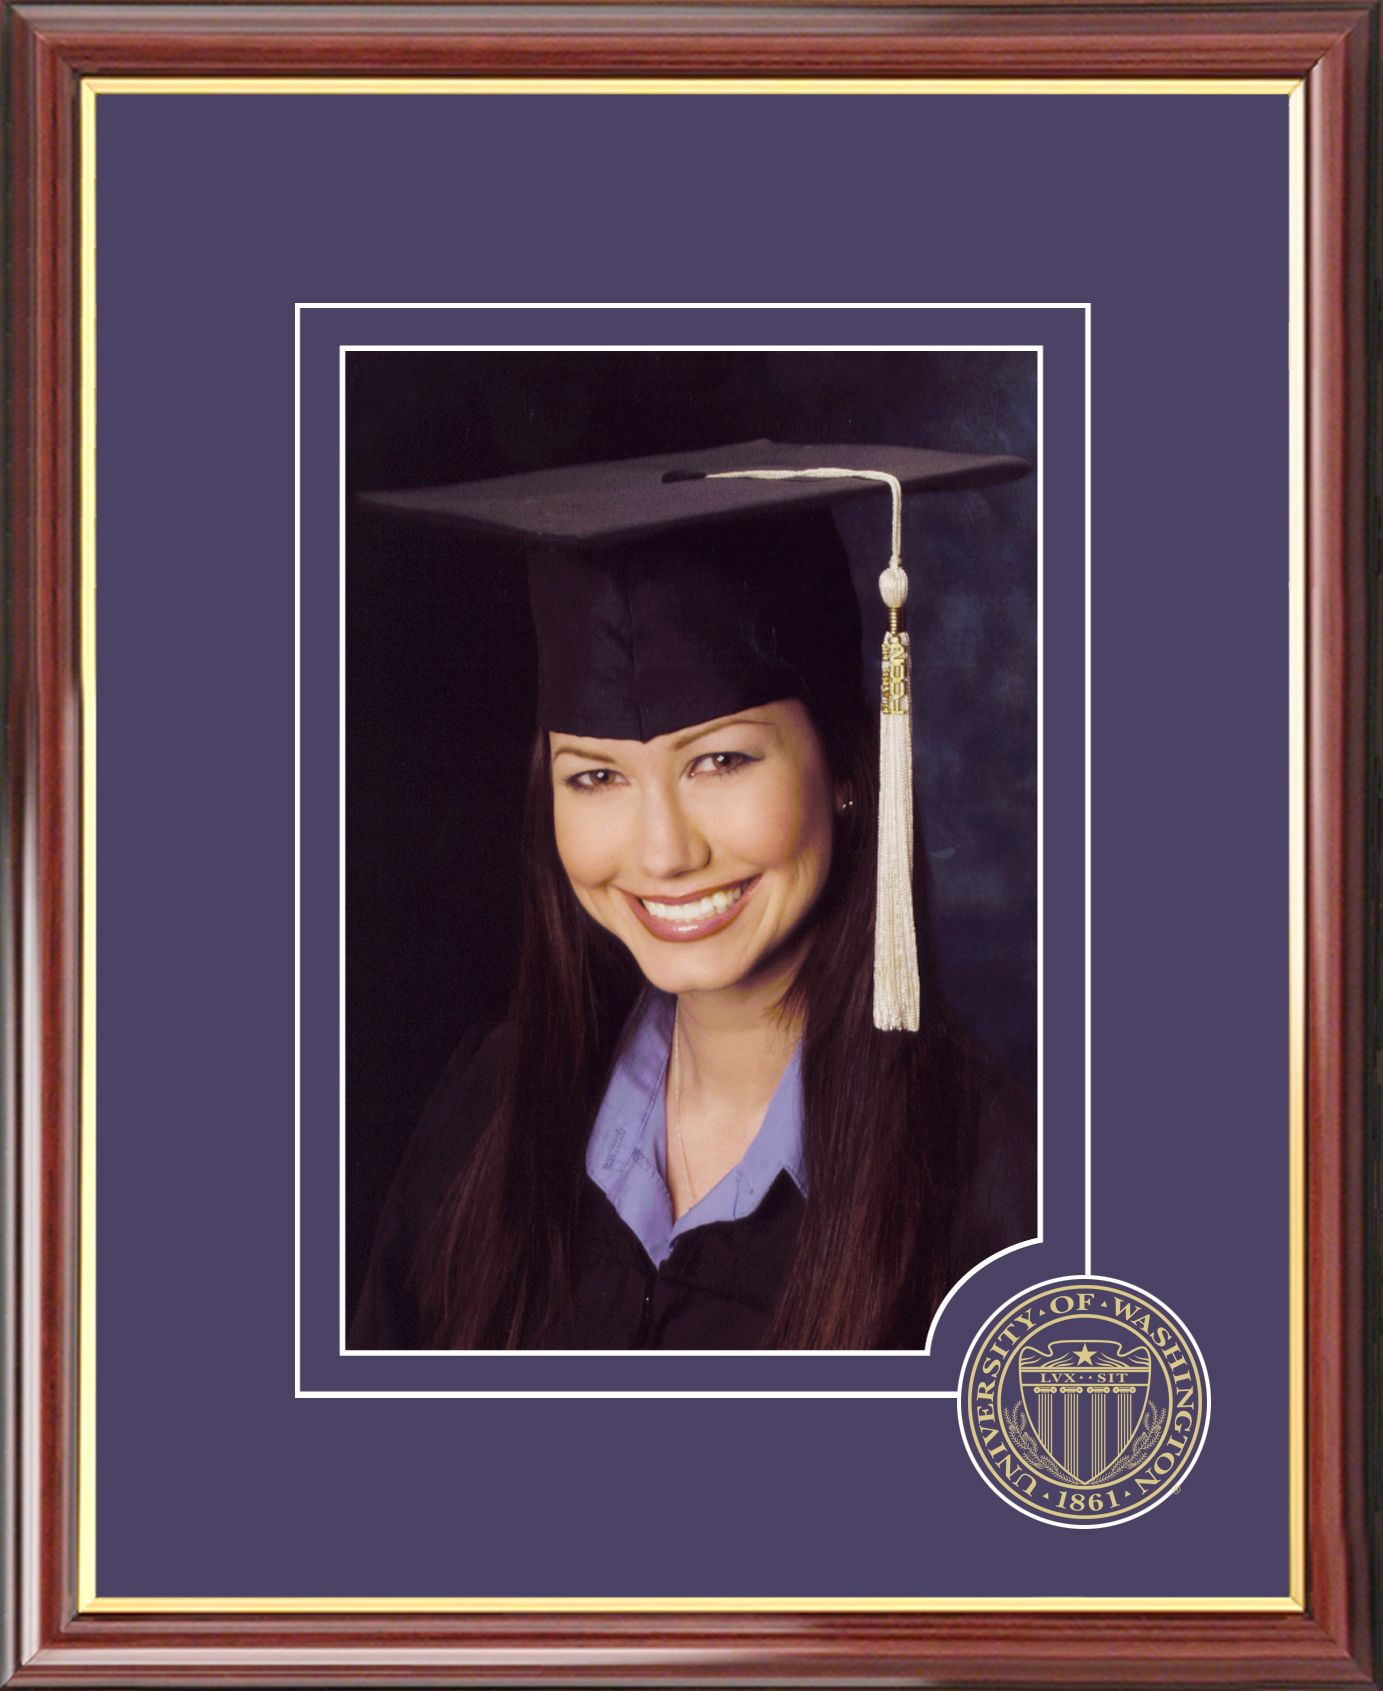 University of Washington 5X7 Graduate Portrait Frame